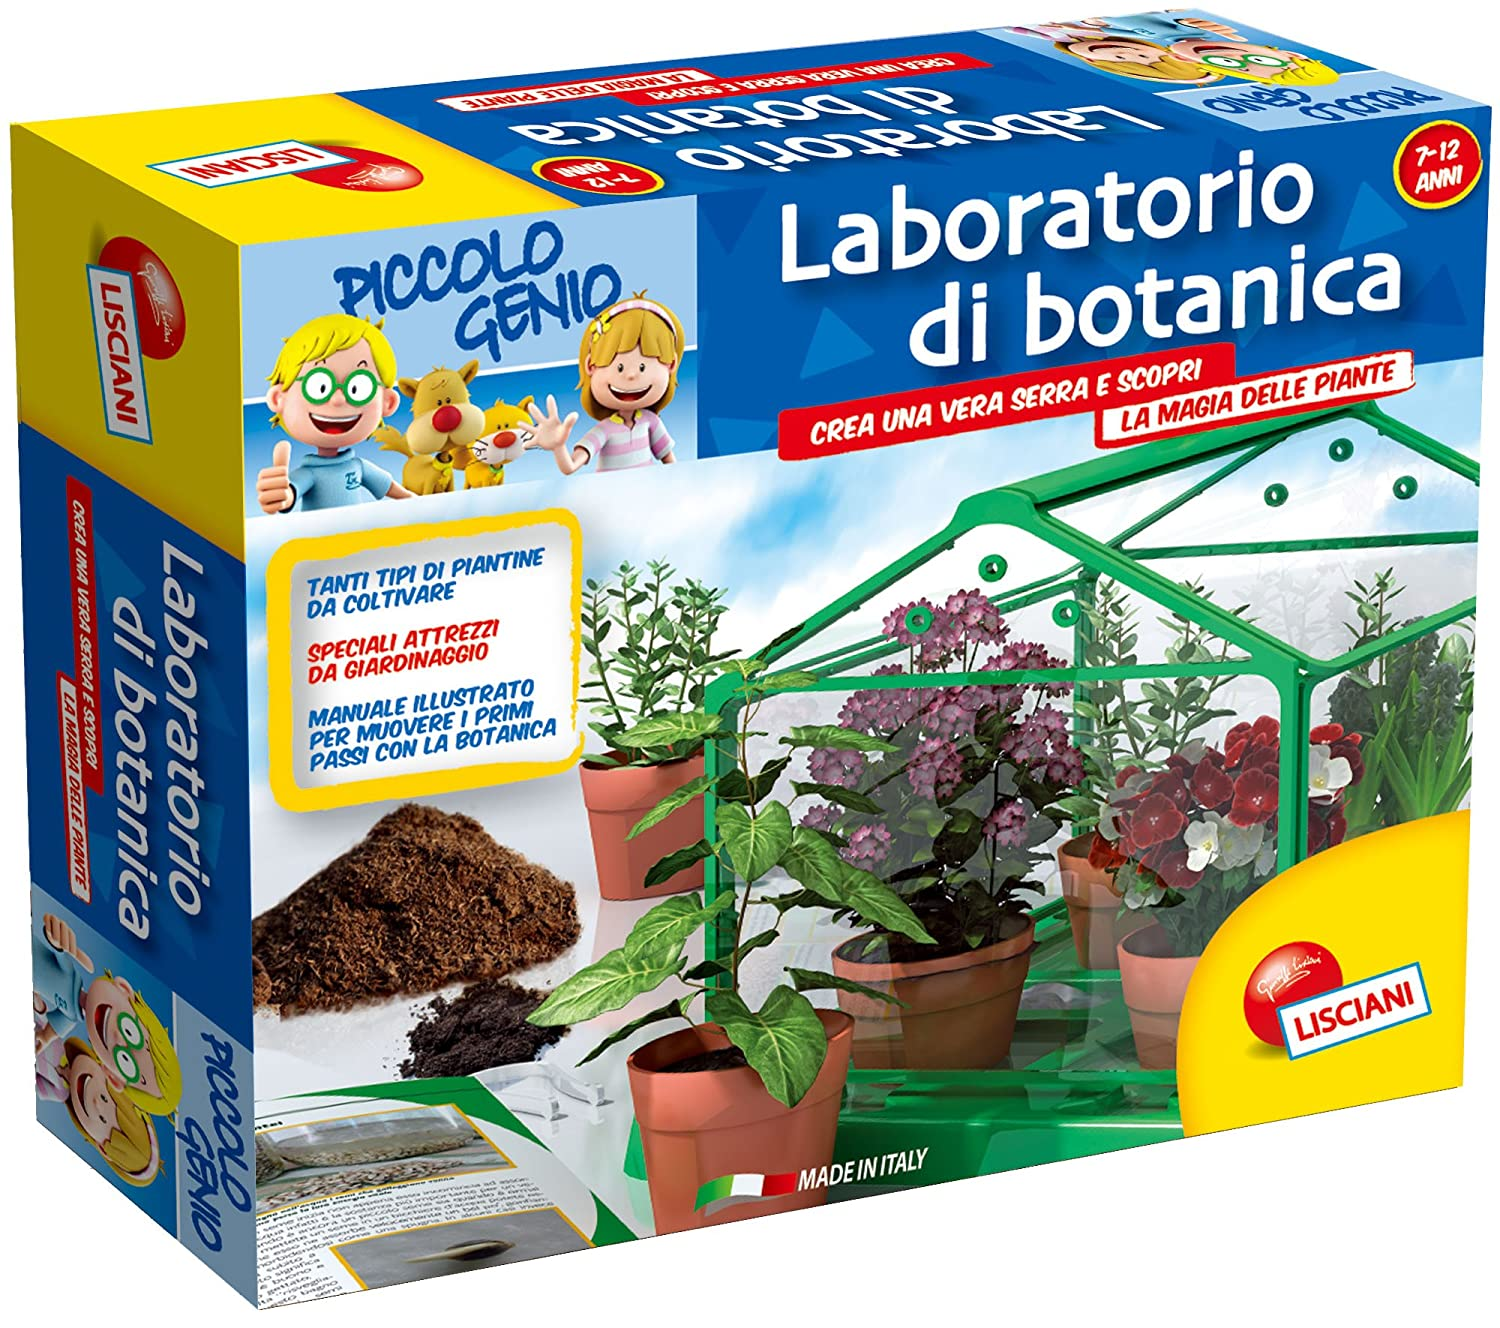 Connu Lisciani 46379 - Piccolo Genio Laboratorio di Botanica: Amazon.it  DS01